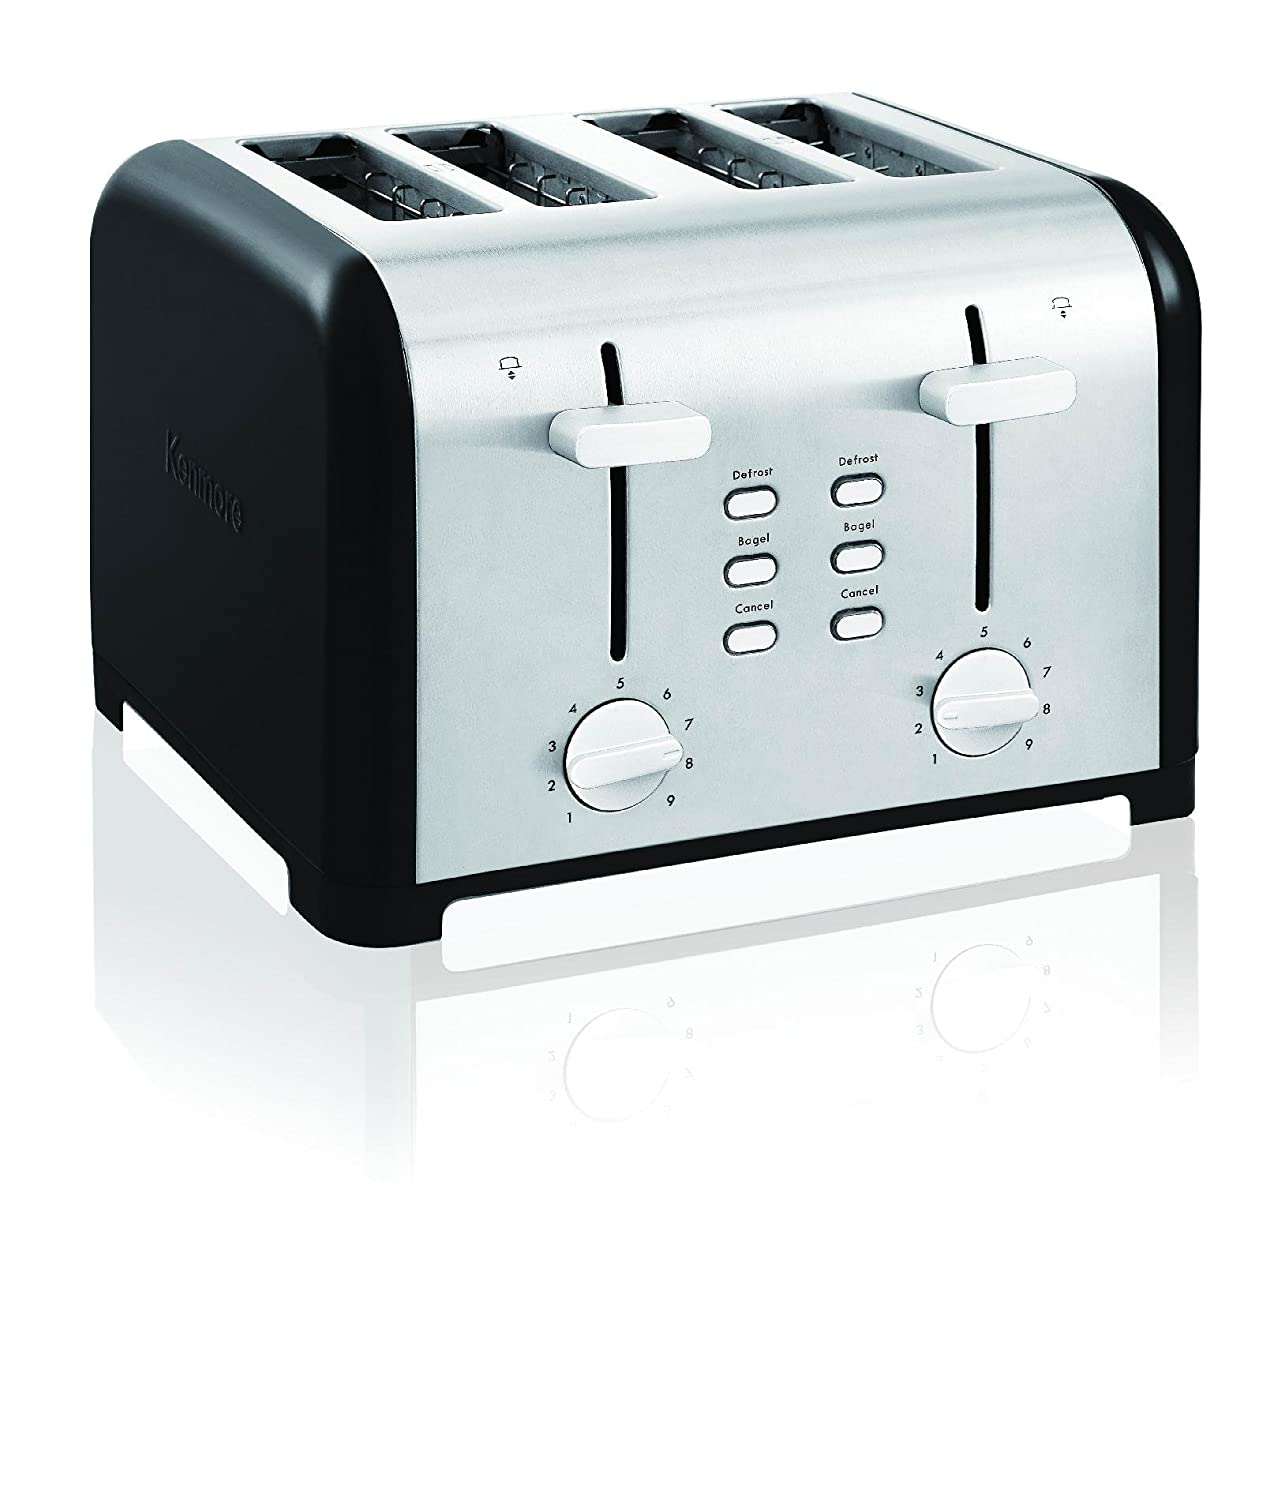 Kenmore 40603 4-Slice Toaster with Dual Controls in Black